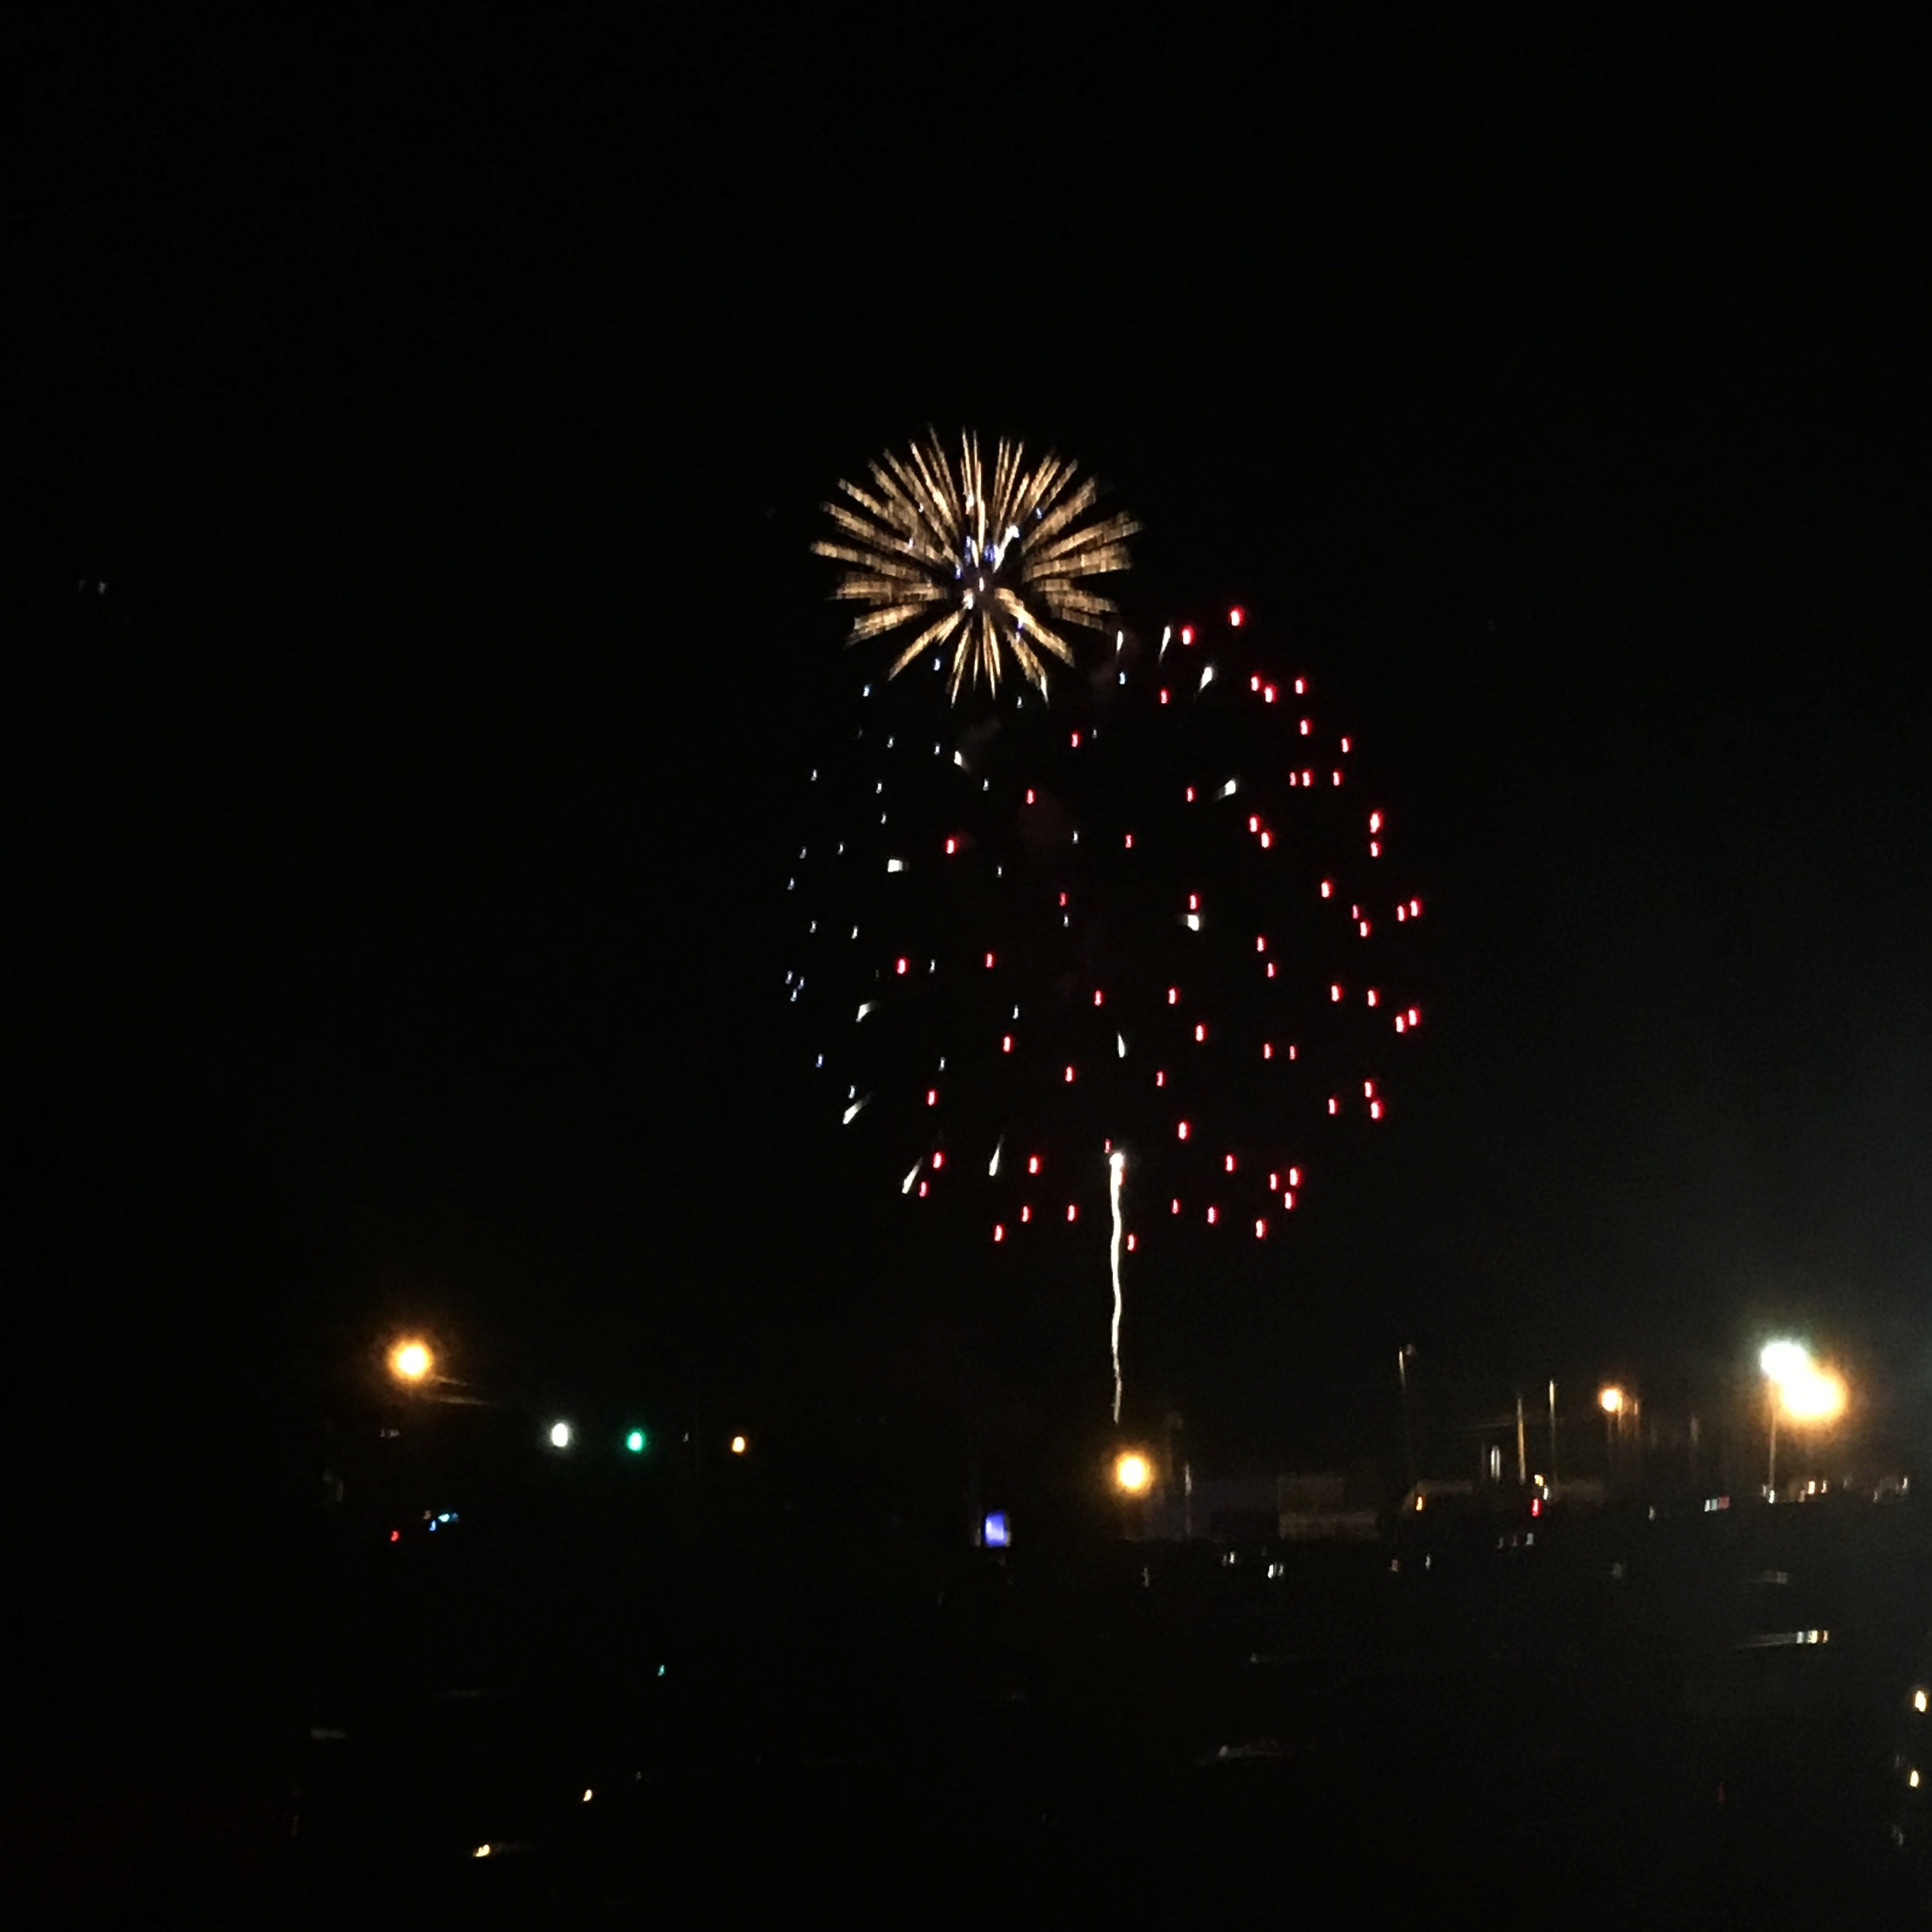 The fireworks were so beautiful!